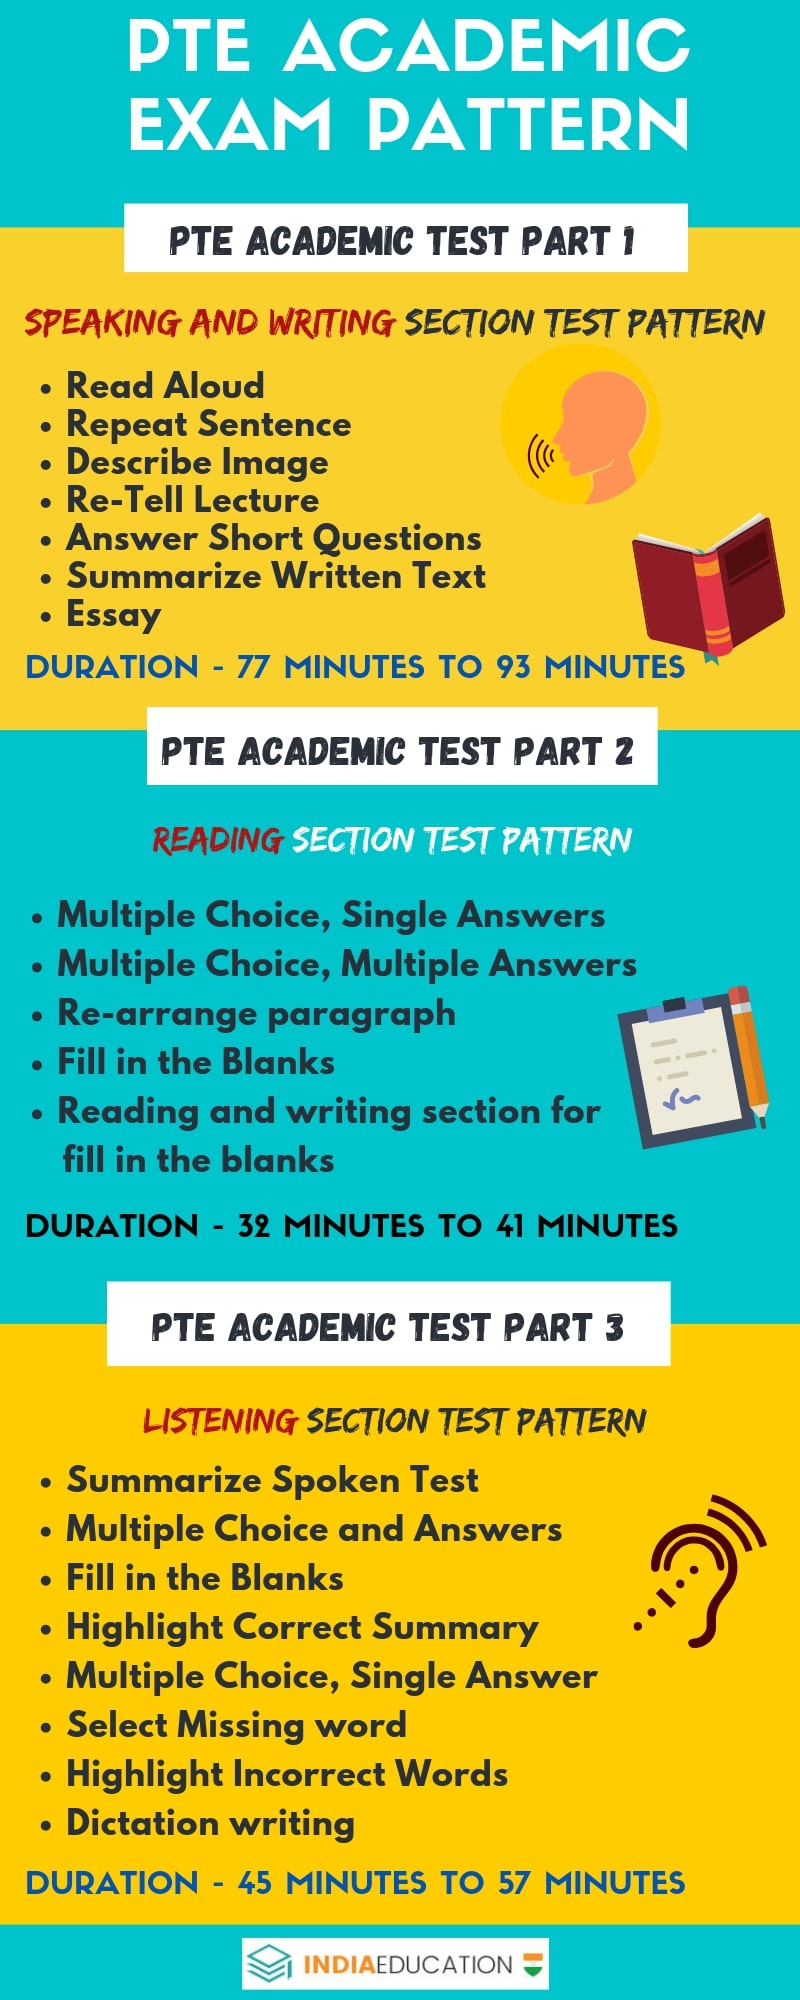 pte-exam-pattern-infographic